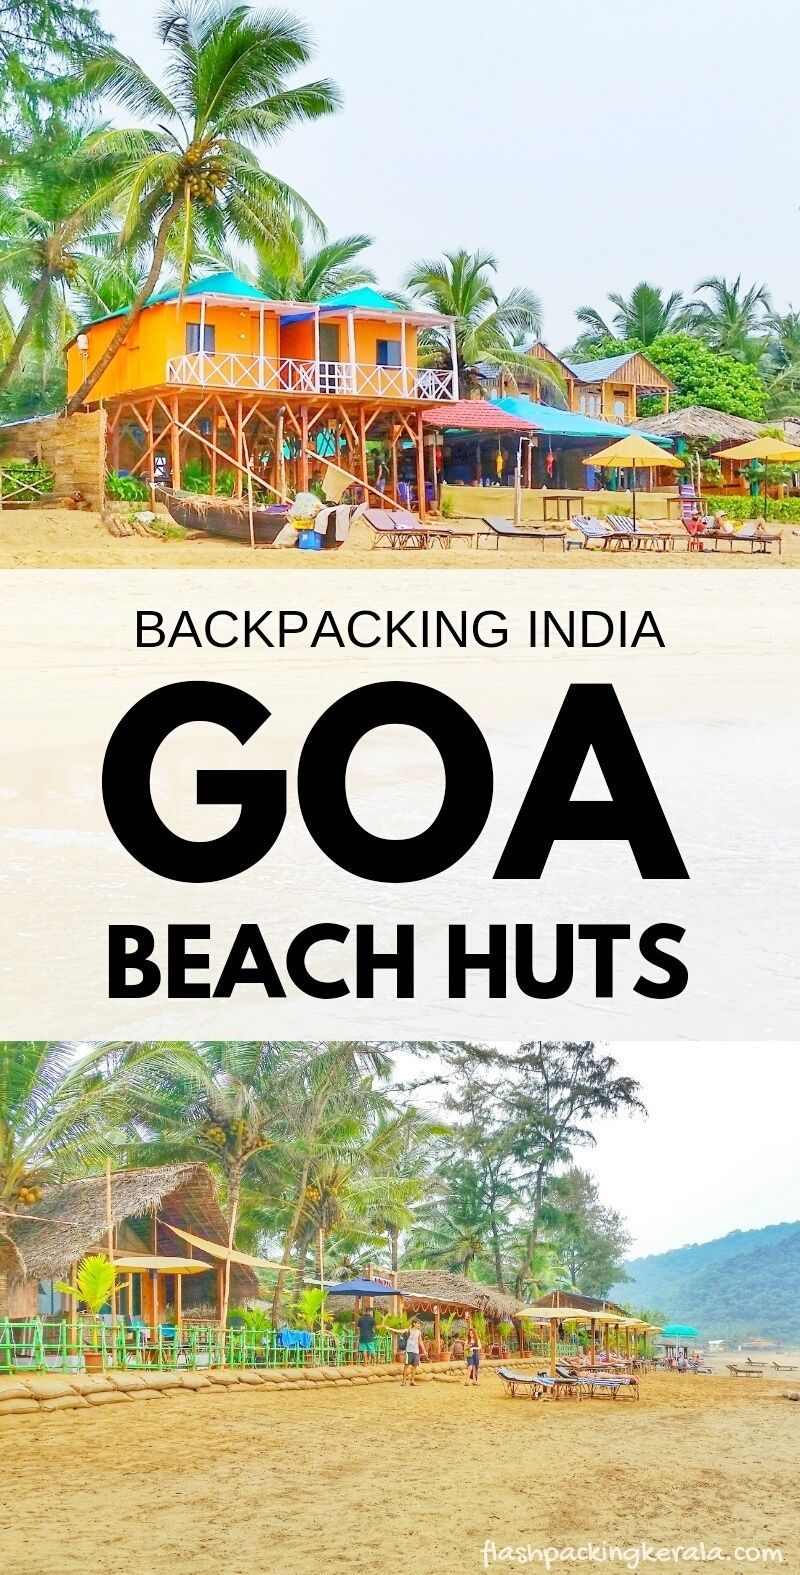 Where to go for best beach huts in South Goa 🌴 Backpacking Goa India |  Outdoor travel, India travel, Culture travel